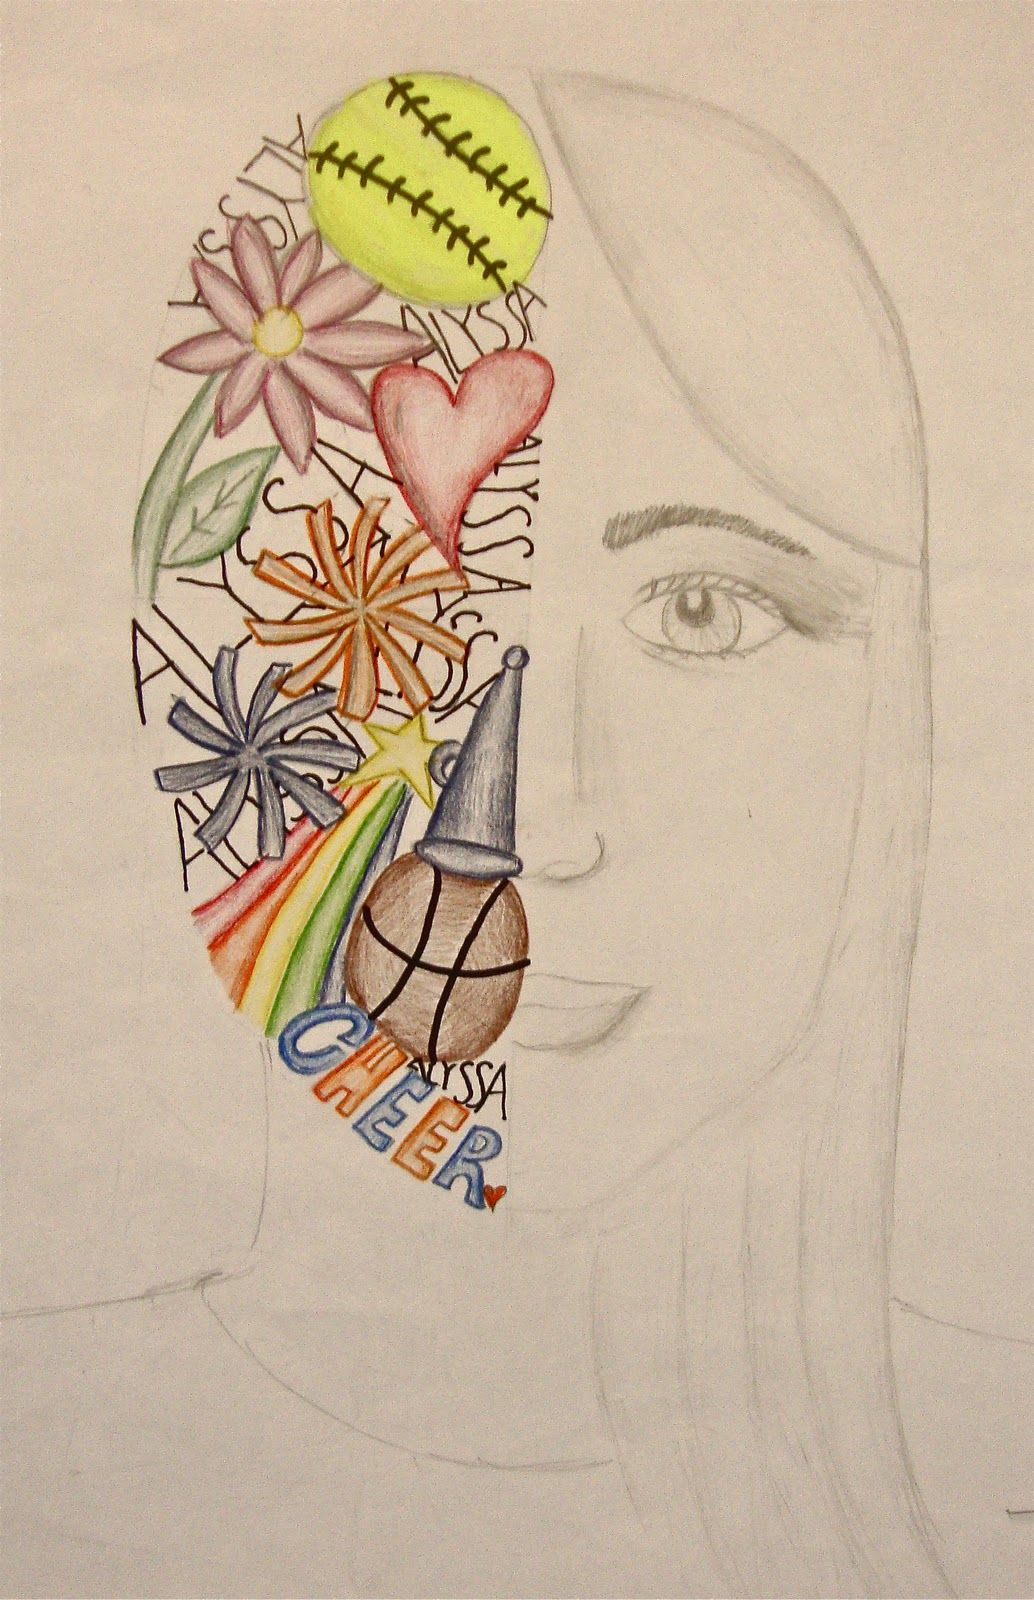 Art Paper Scissors Glue Split Face Self Portrait